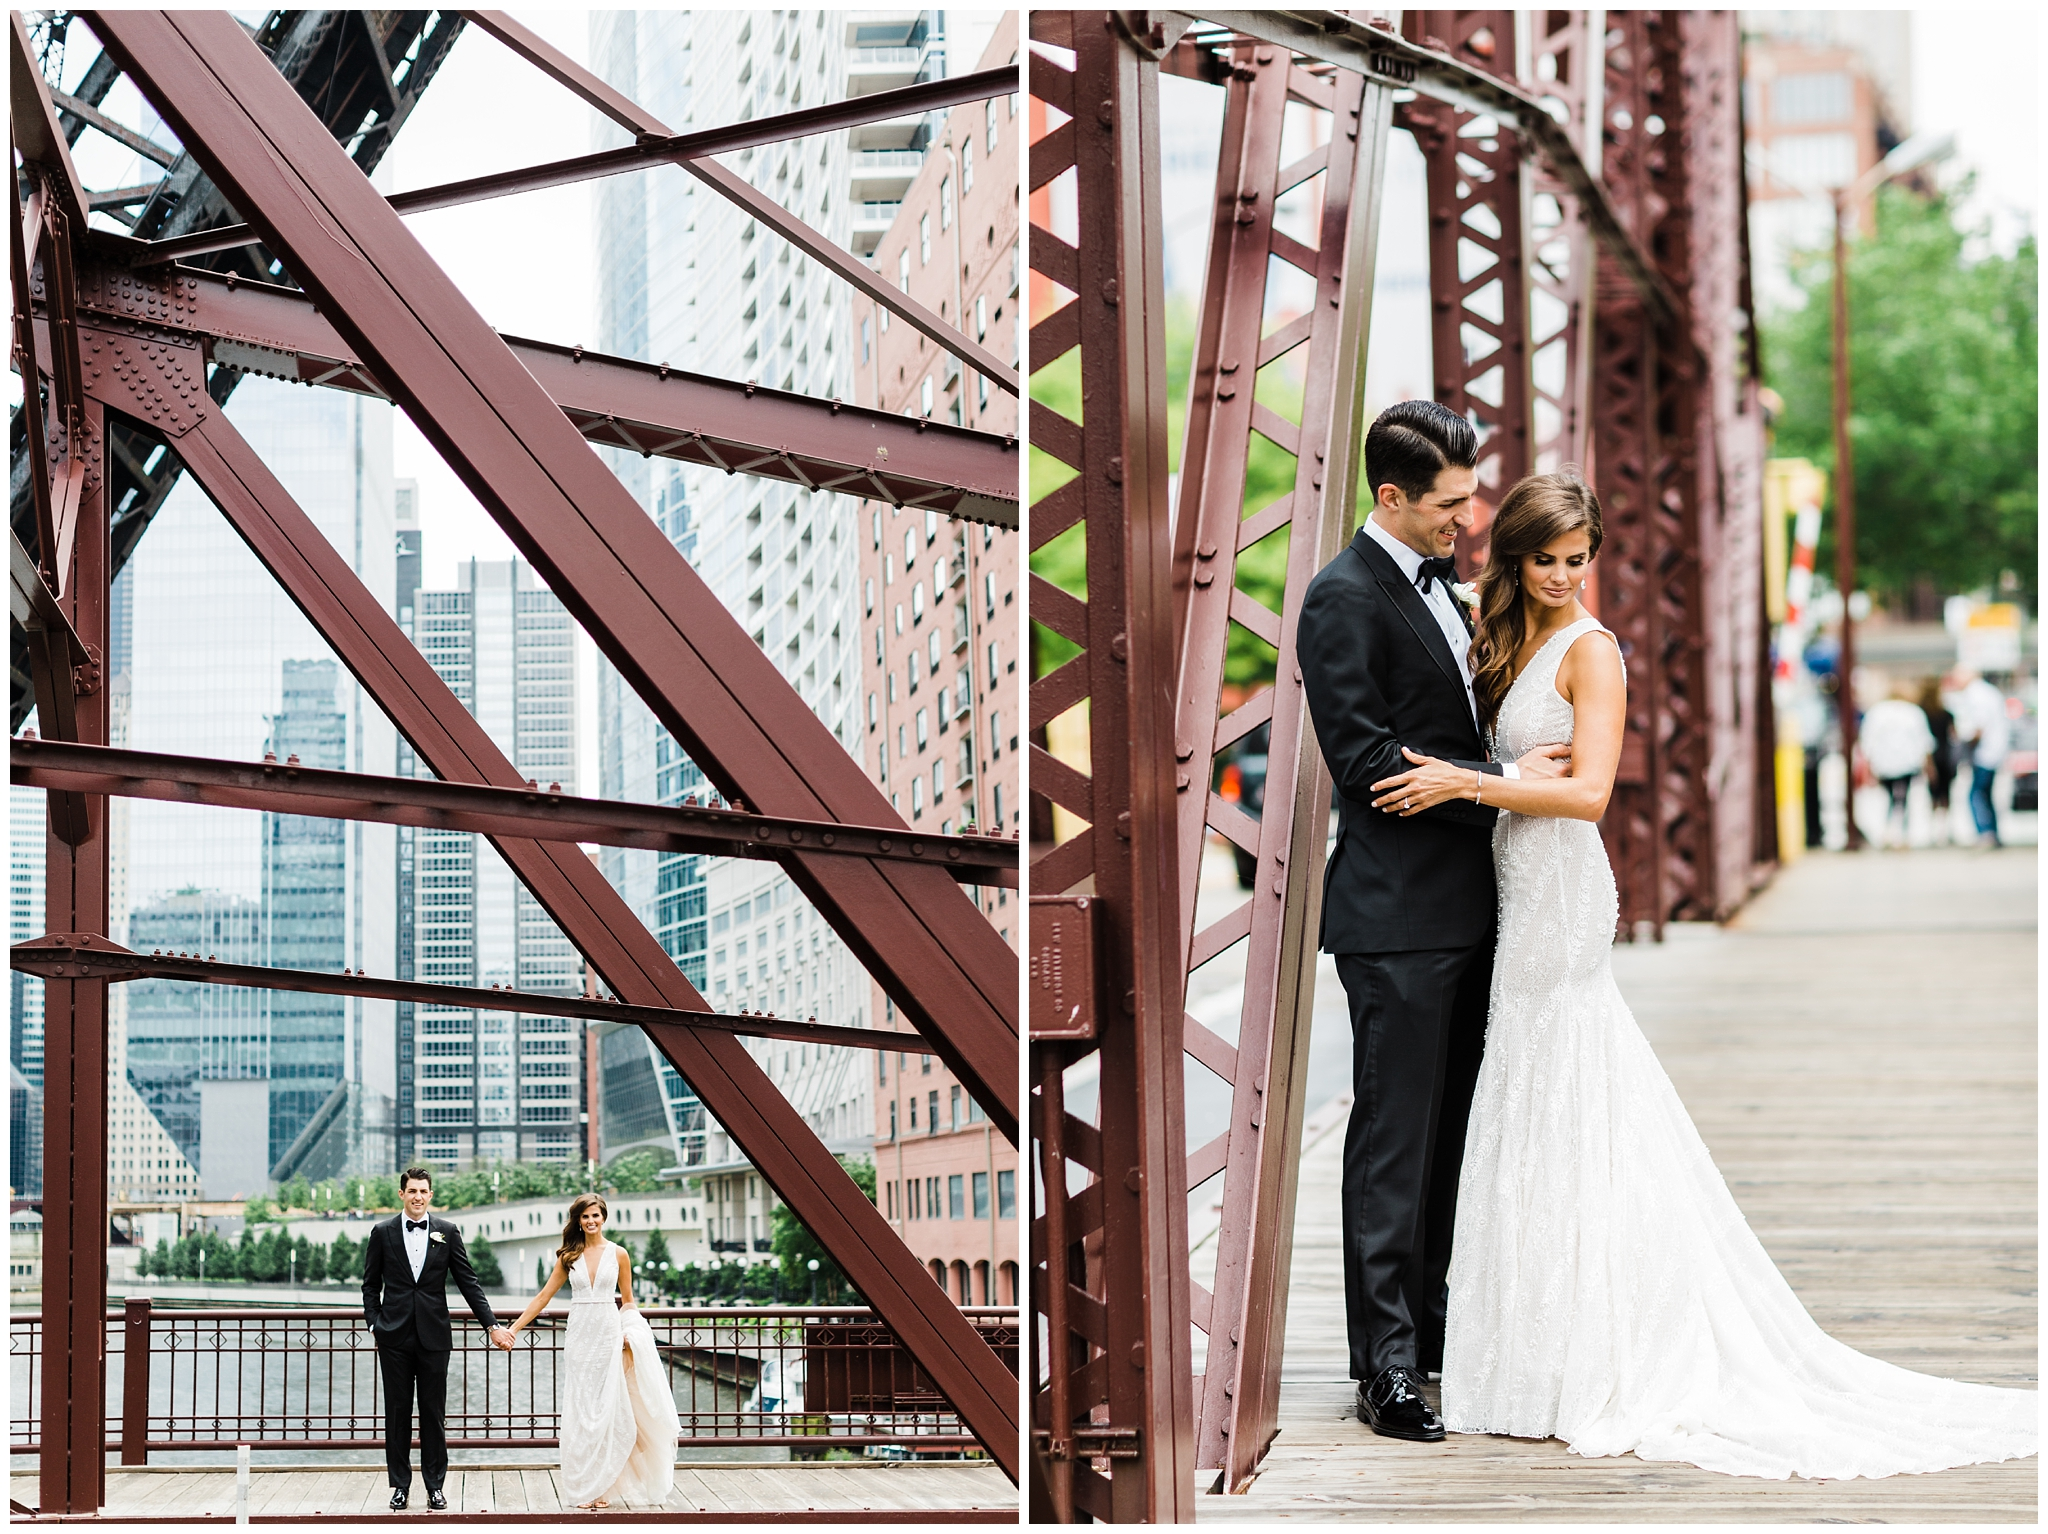 chicagoweddingphotographer_chicagowedding_ivyroomwedding_ivyroomchicago__0026.jpg